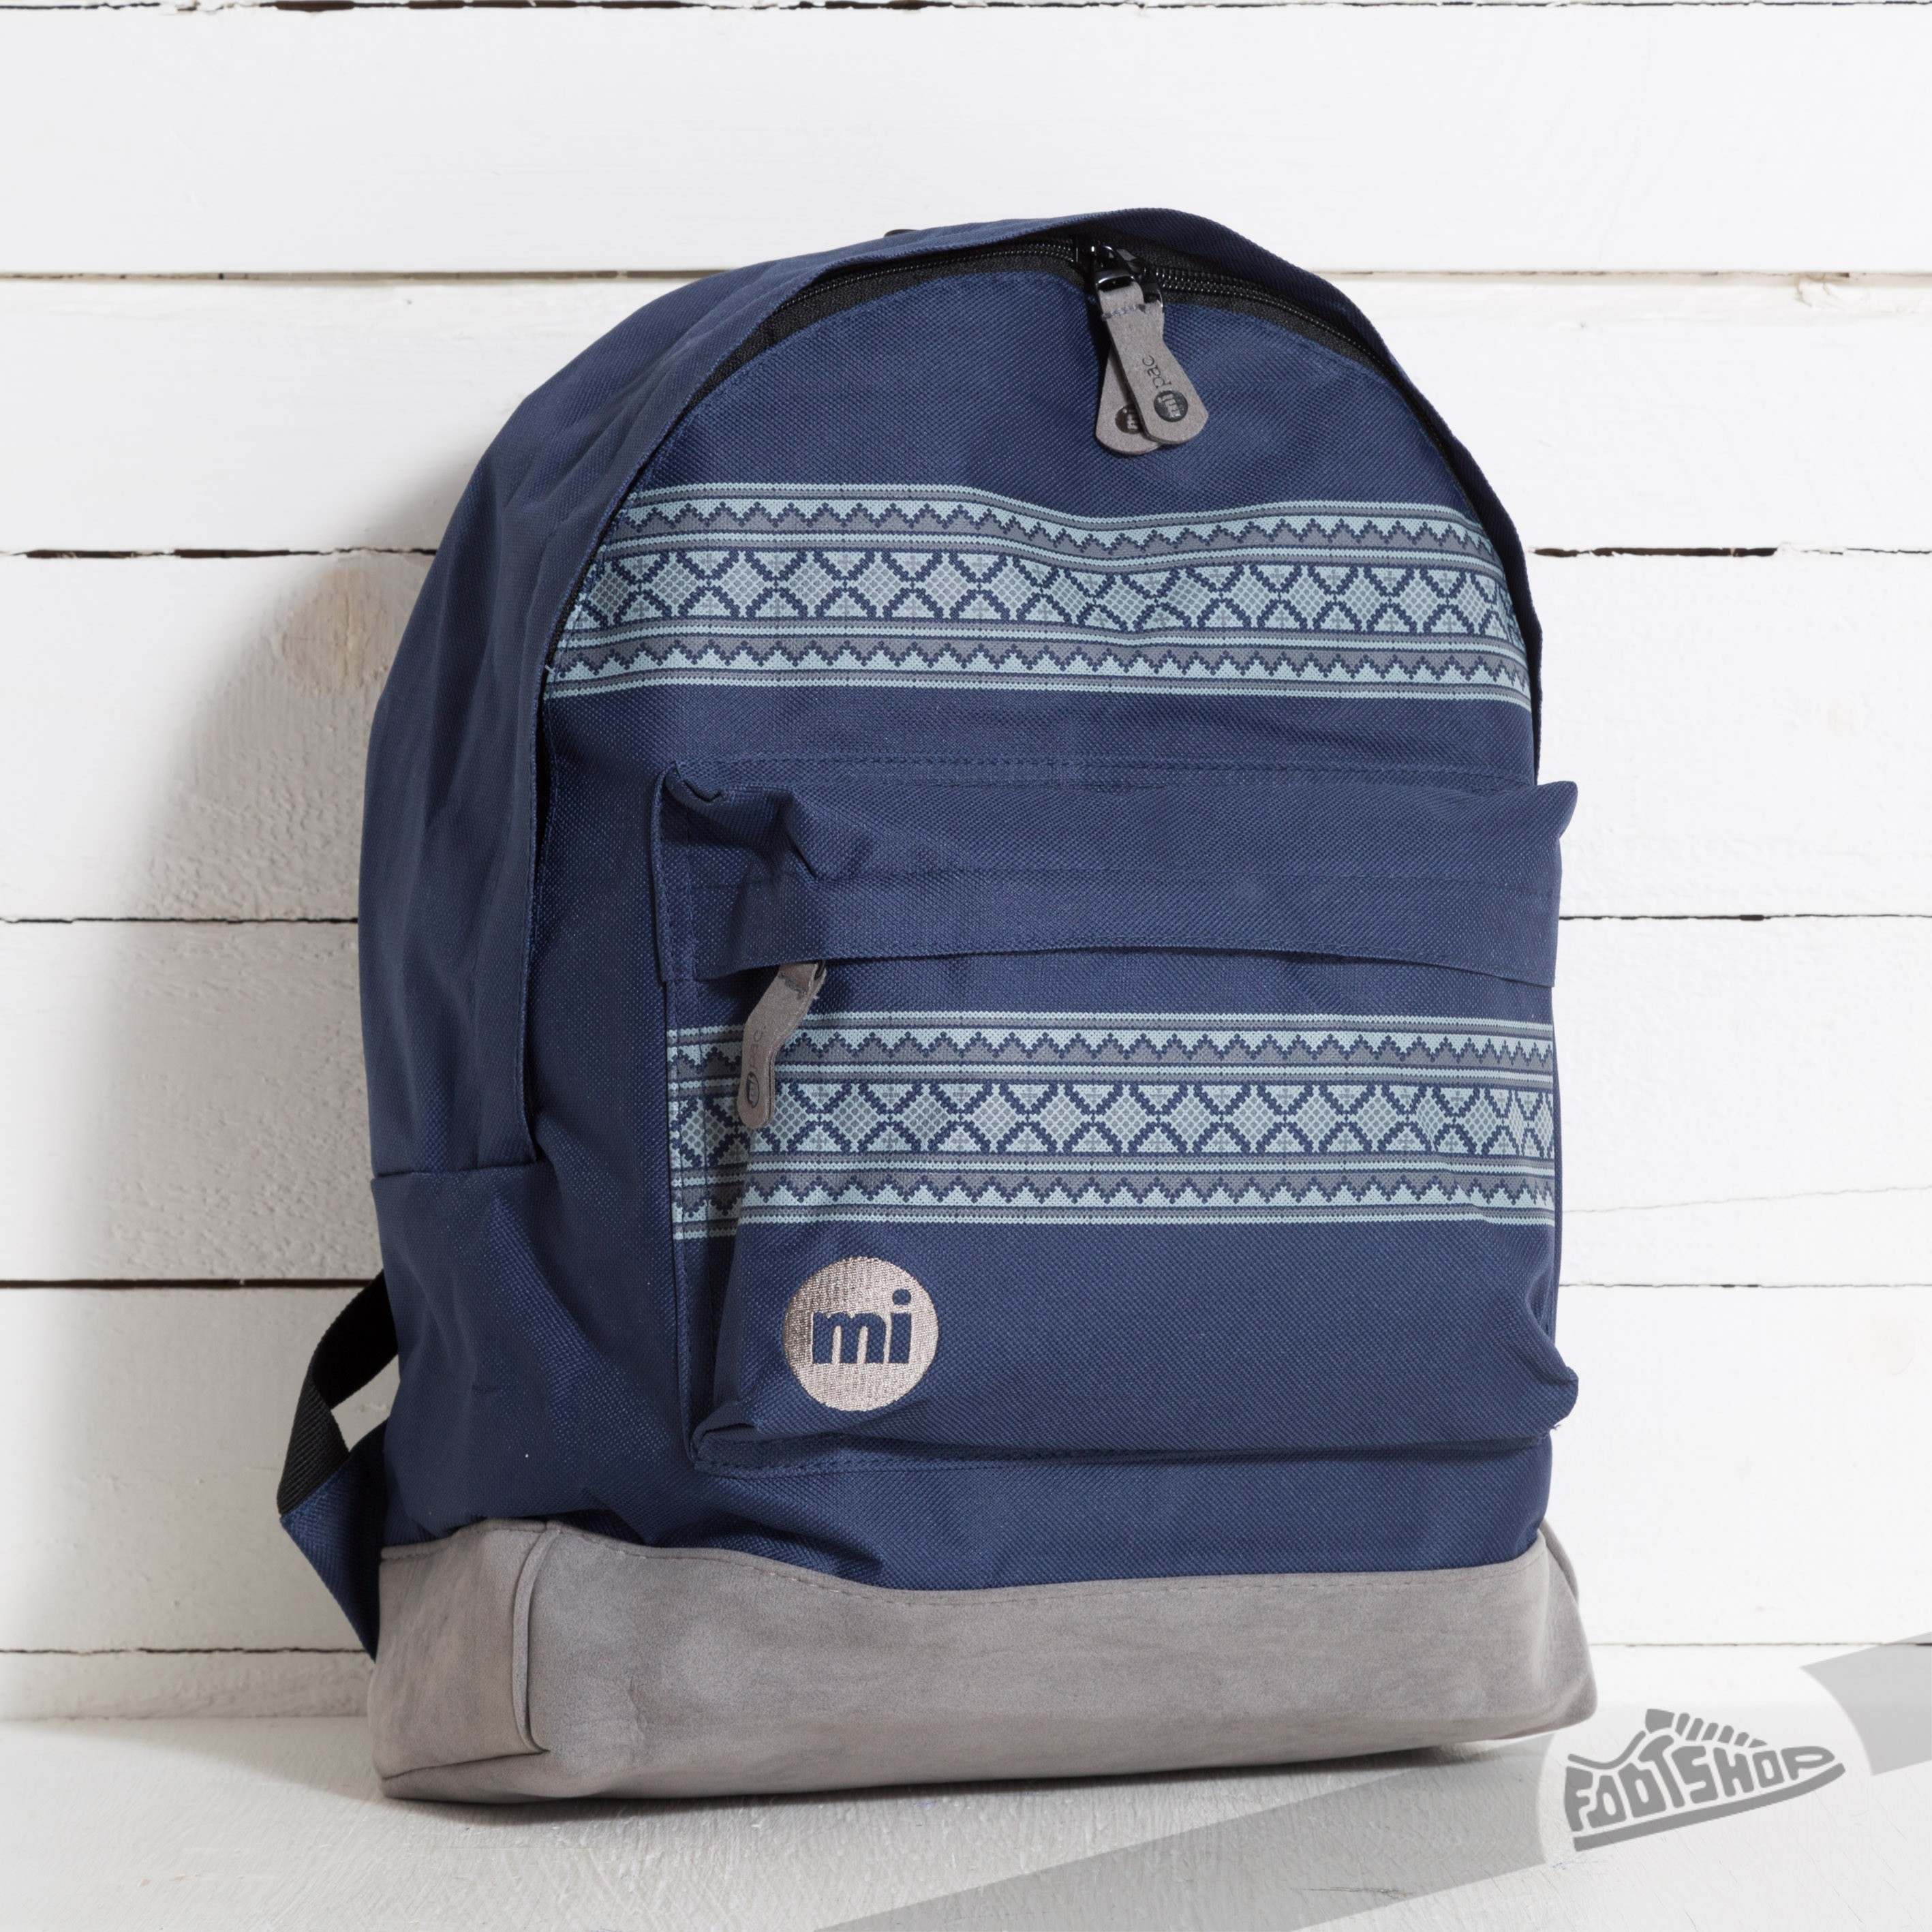 e50c408499 Mi-Pac Nordic Bag Navy Charcoal